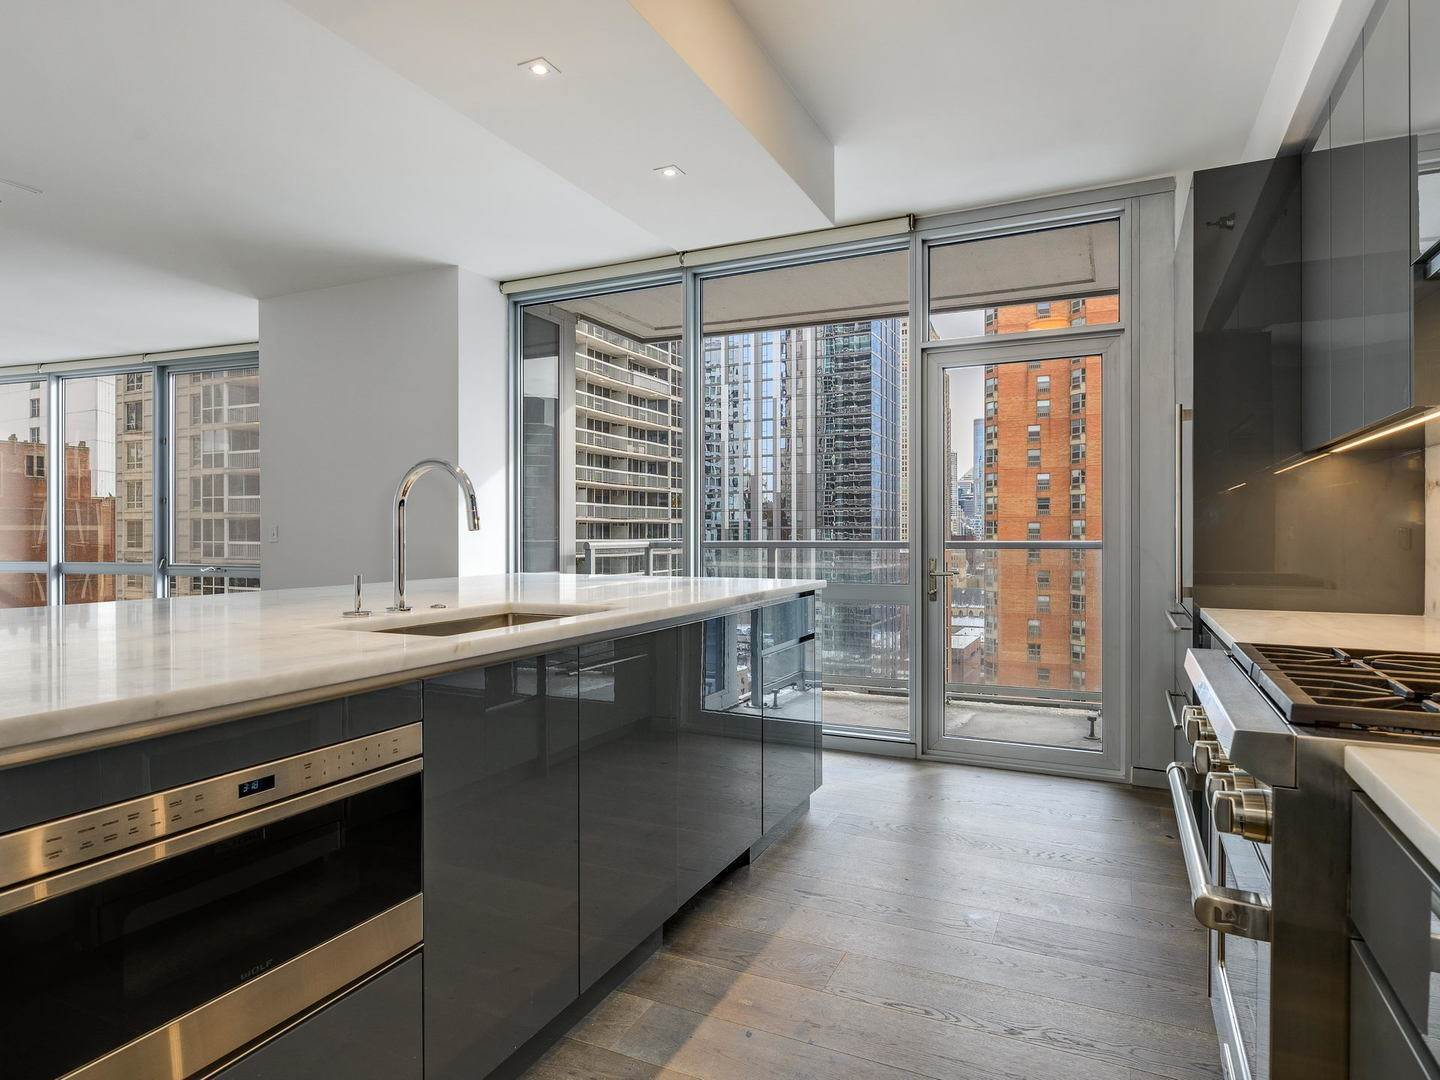 3. Residential Lease at Rush and Division, Chicago, Illinois, 60610 United States